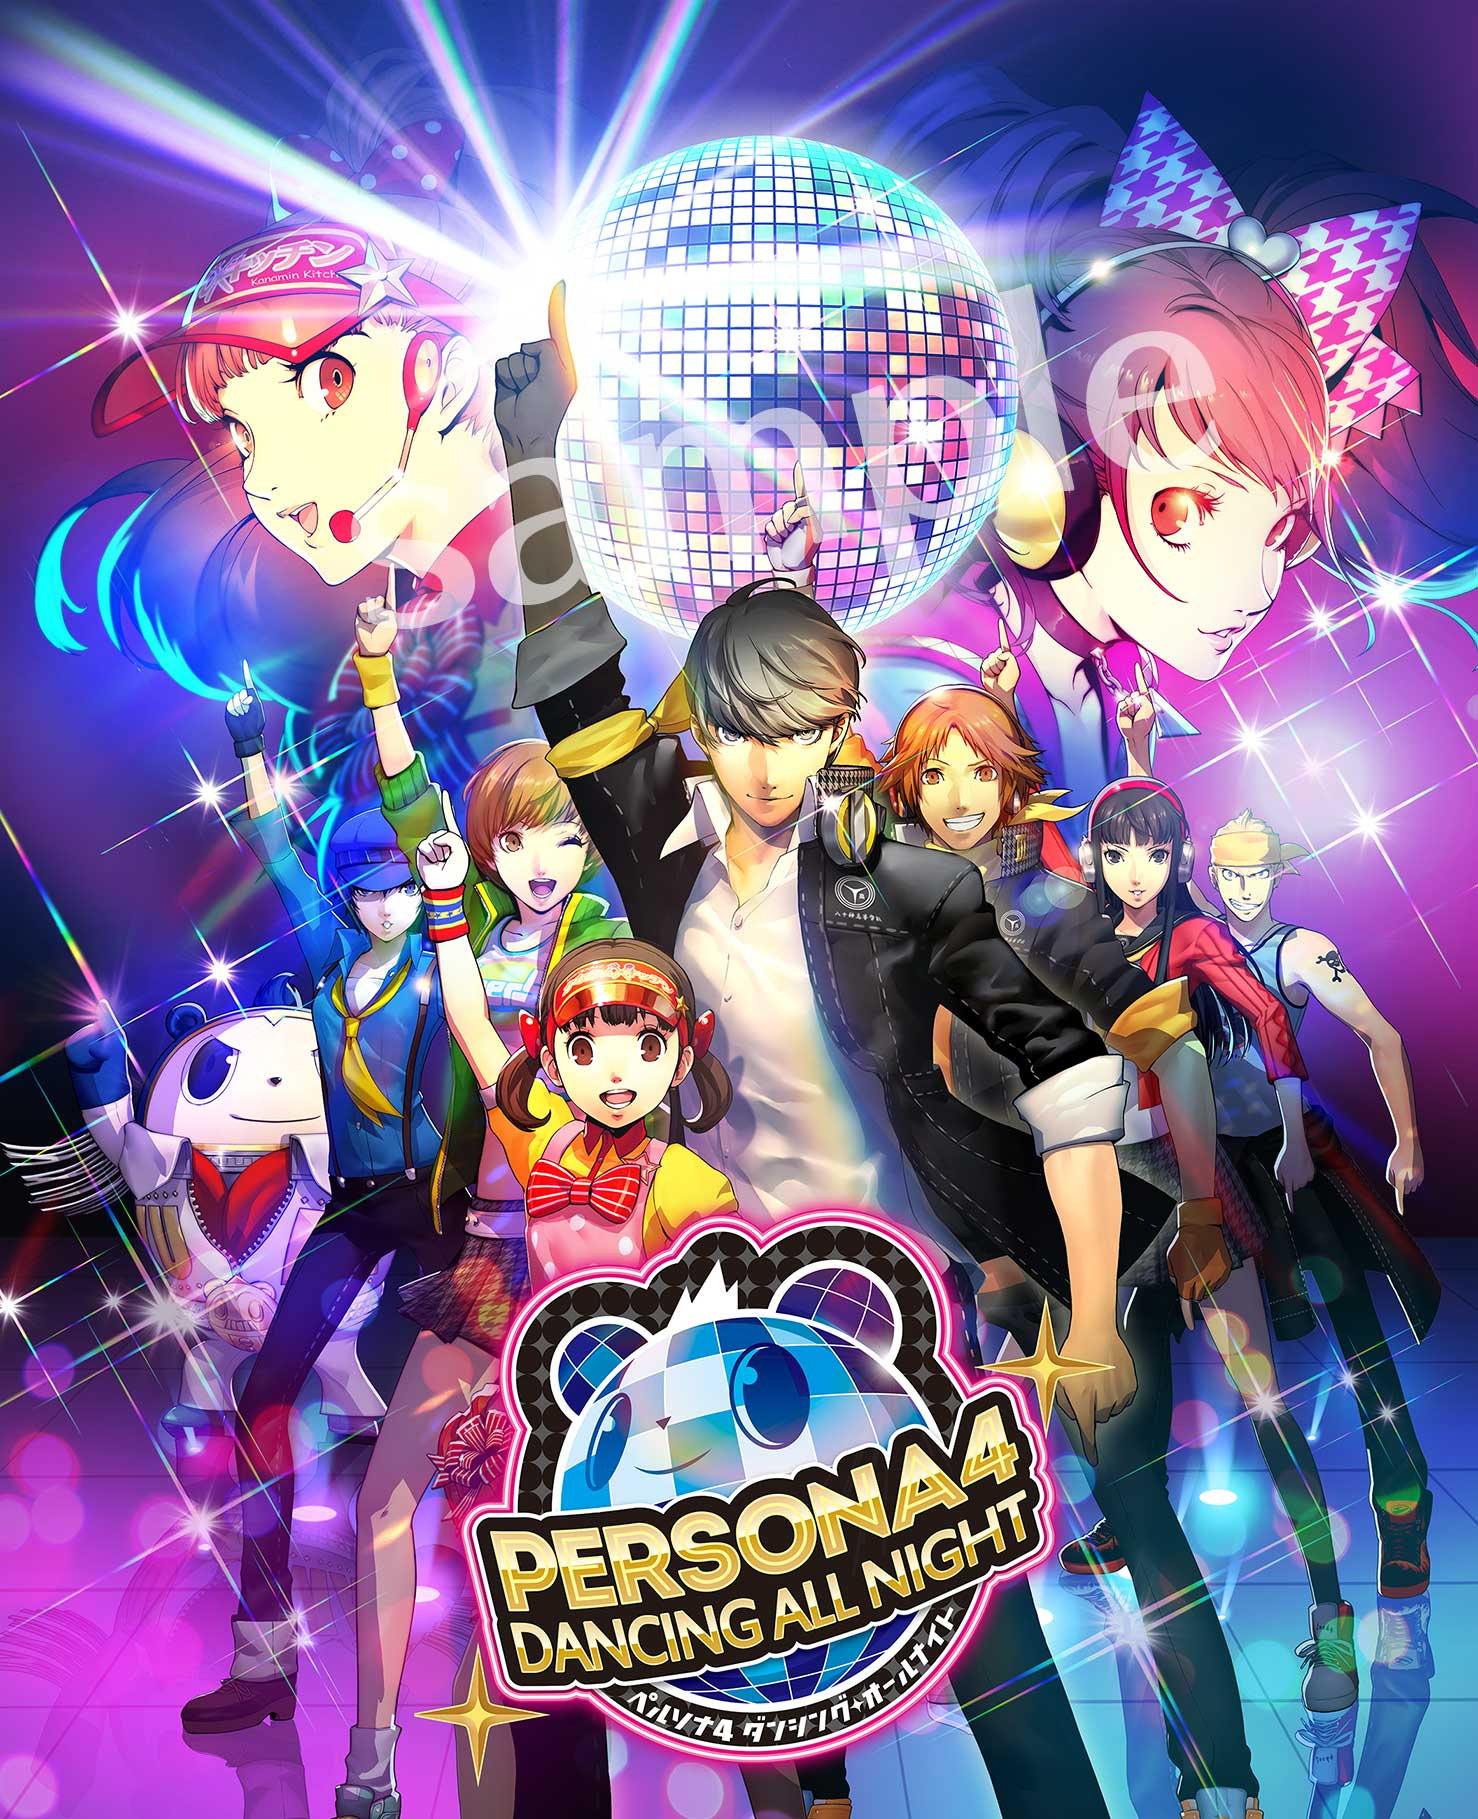 Persona 4: Dancing All Night – Coming to Europe without Delay